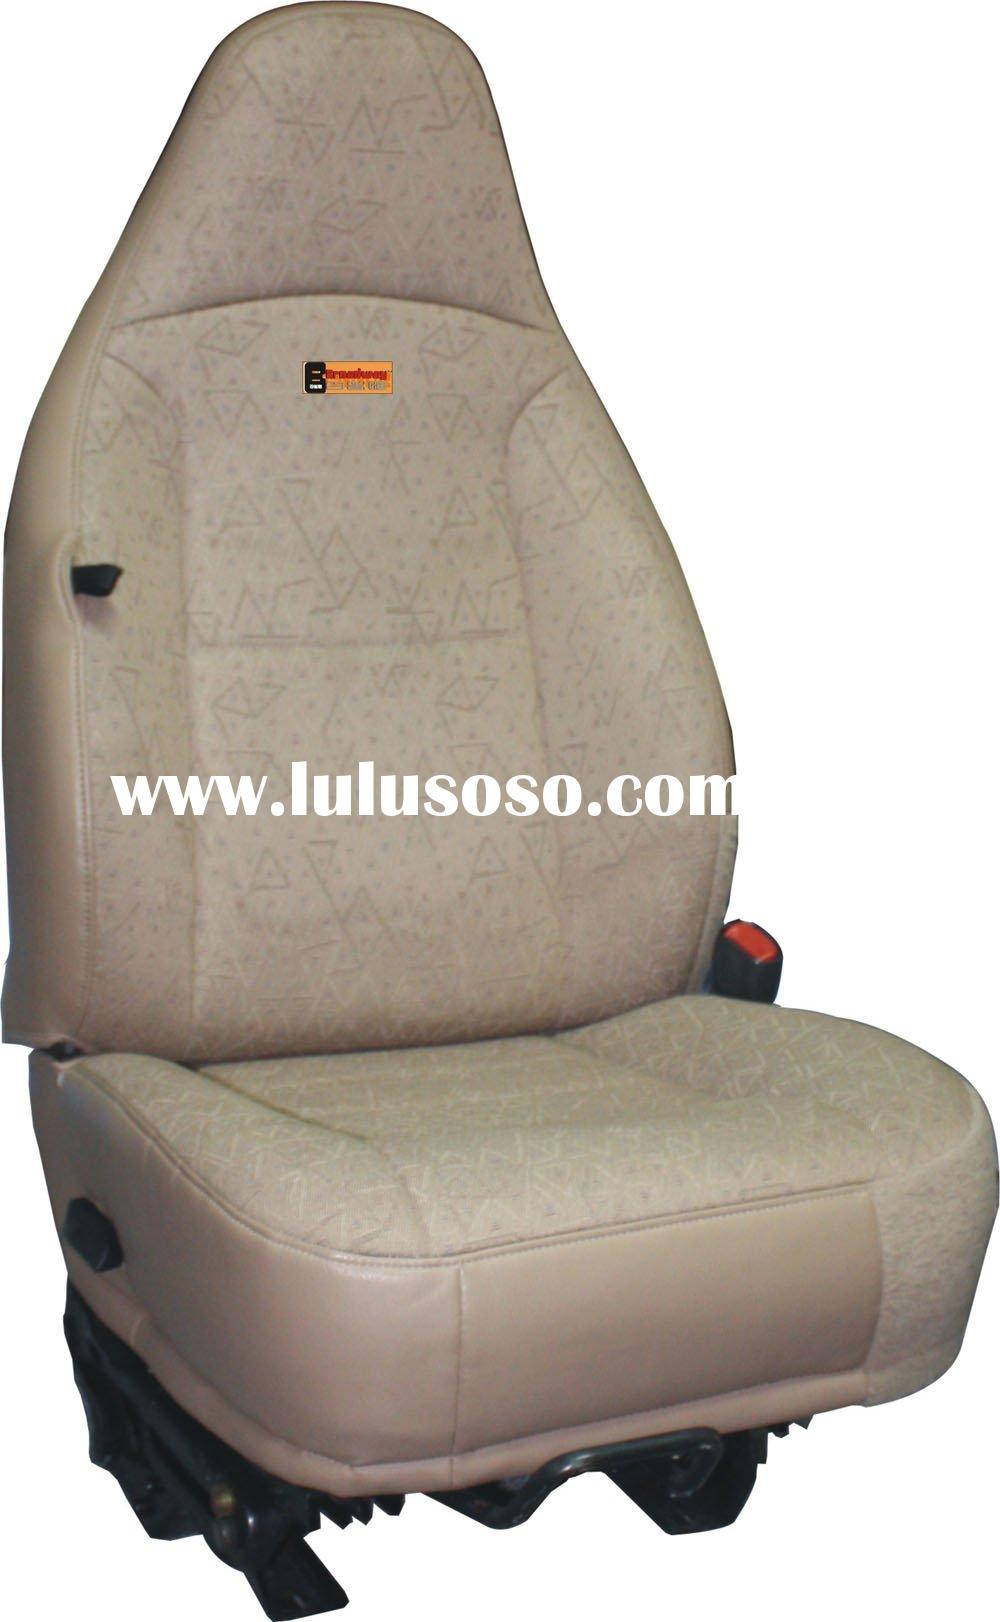 reclining car seat reclining car seat manufacturers in page 1. Black Bedroom Furniture Sets. Home Design Ideas